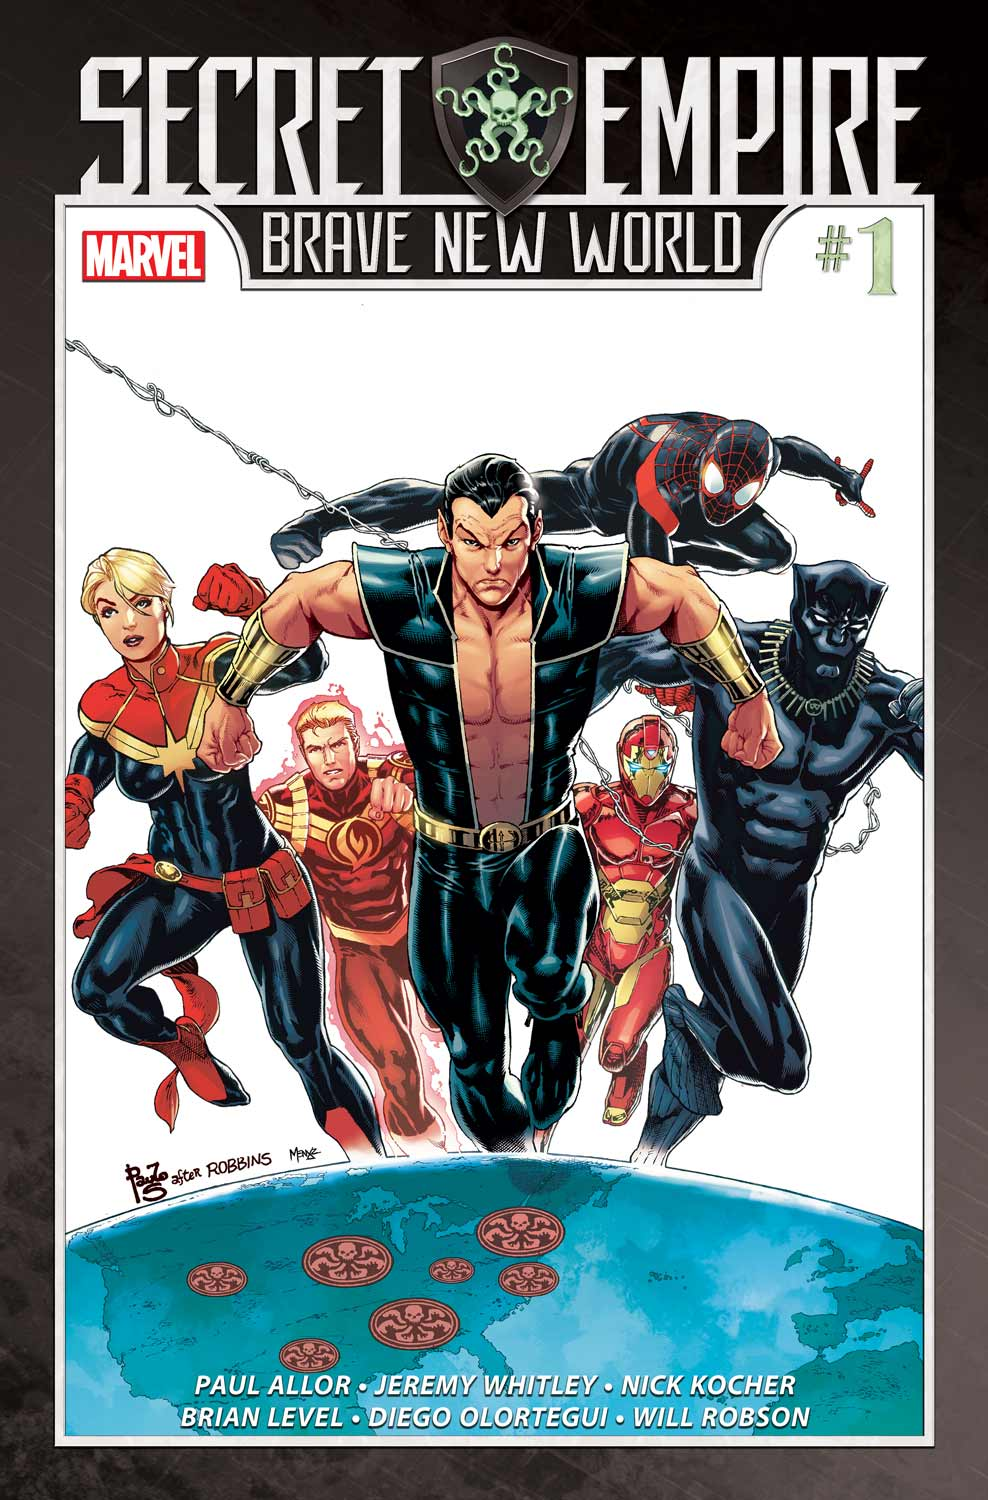 Marvel Preview: Secret Empire: Brave New World #1 and #2 Covers